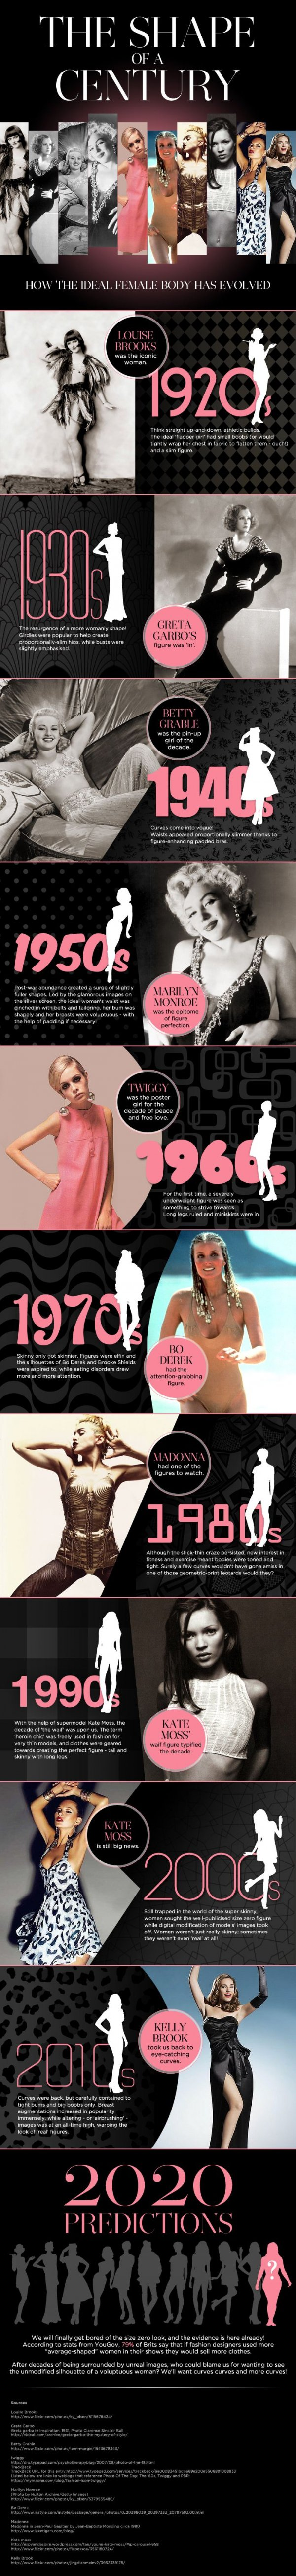 Let's Kick off with How Women's Bodies Have Evolved